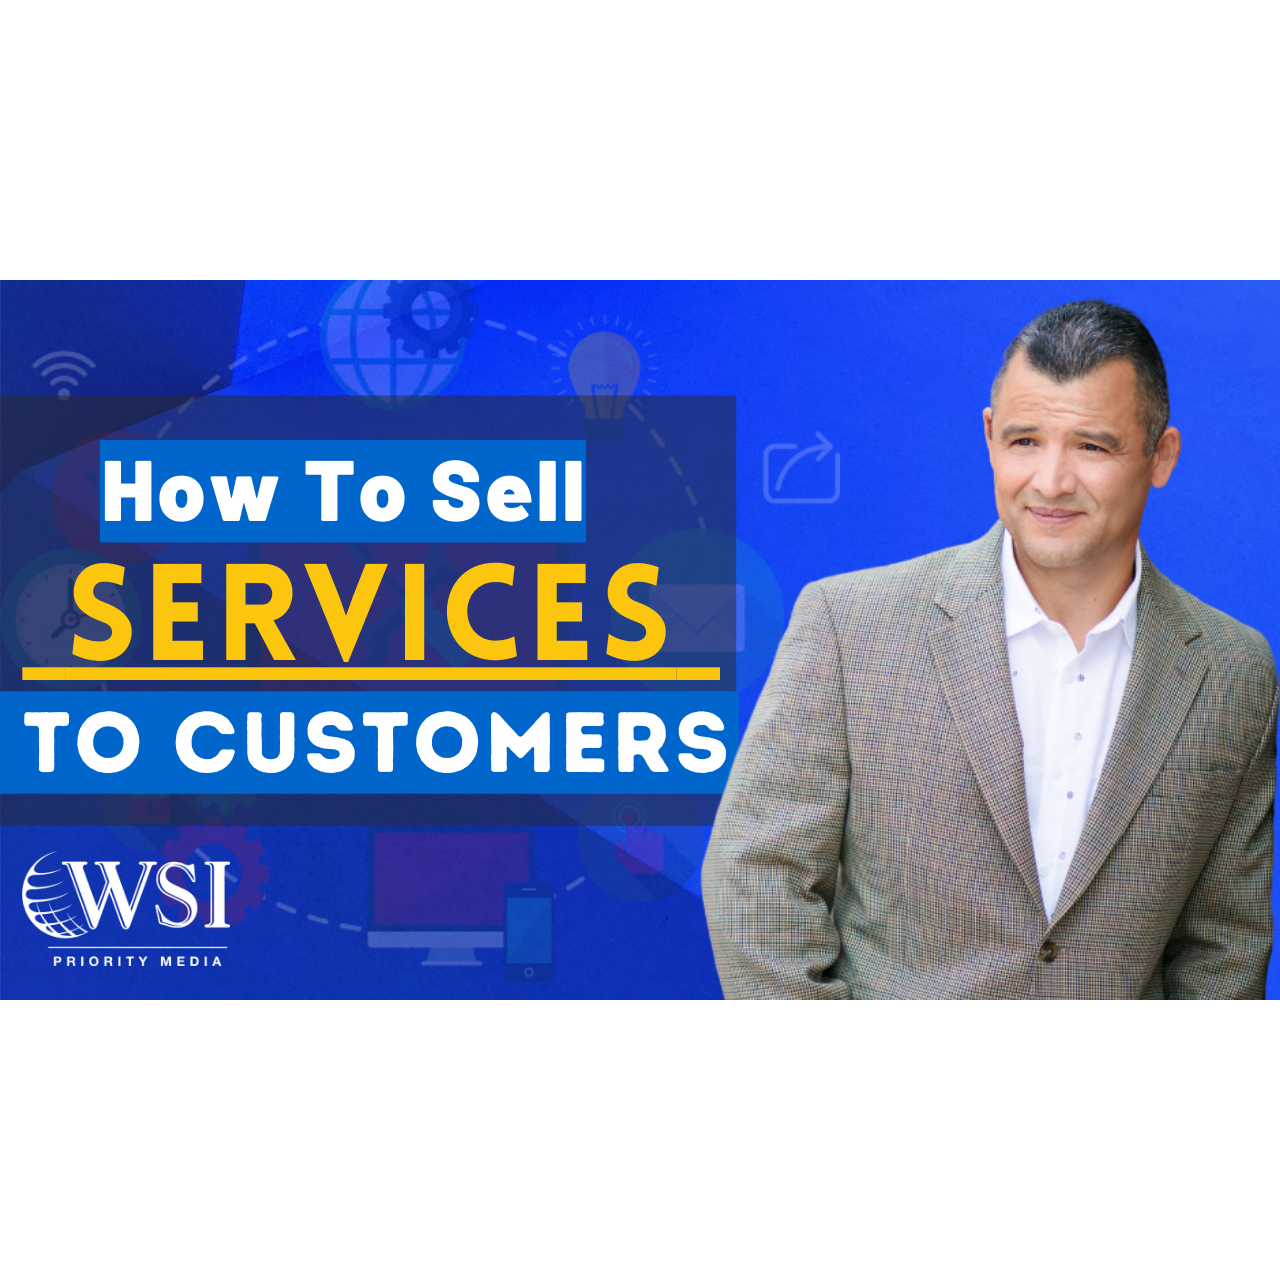 How To Sell Services To Customers